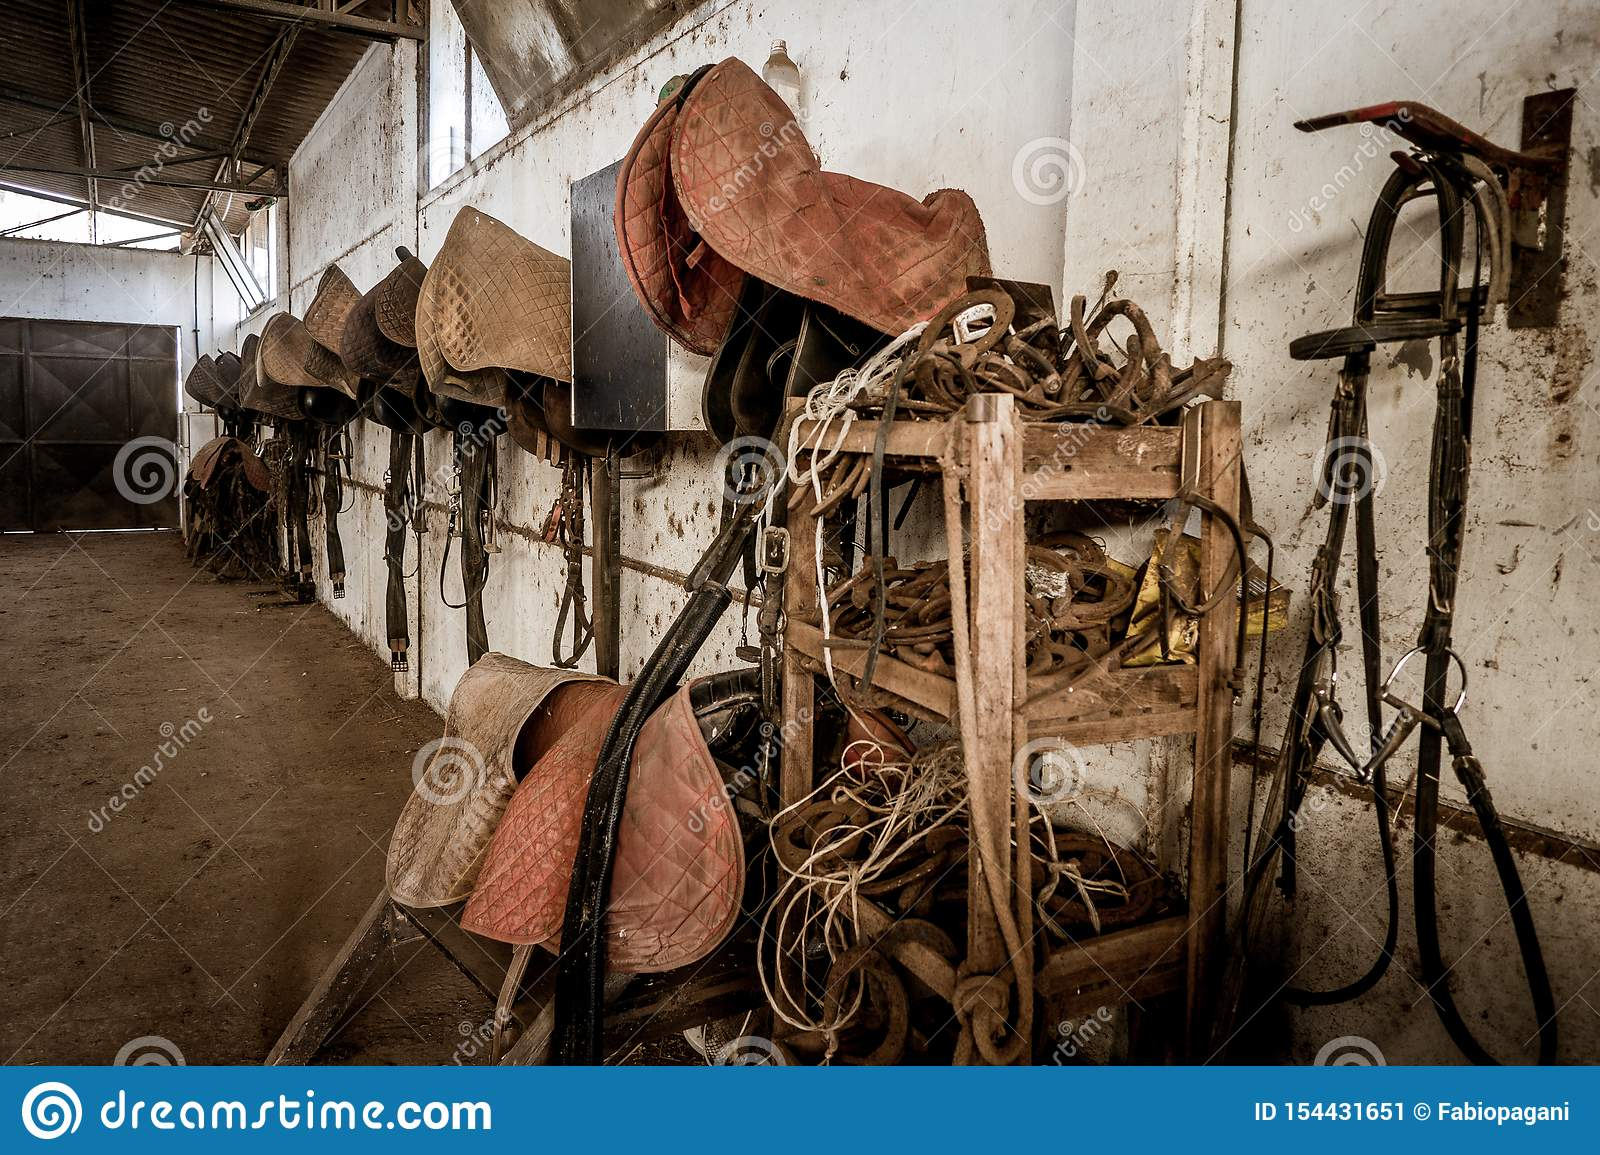 Aged Old Horse Barn Interior With Saddles Hanging On Wall Stock Image Image Of Objects Barn 154431651